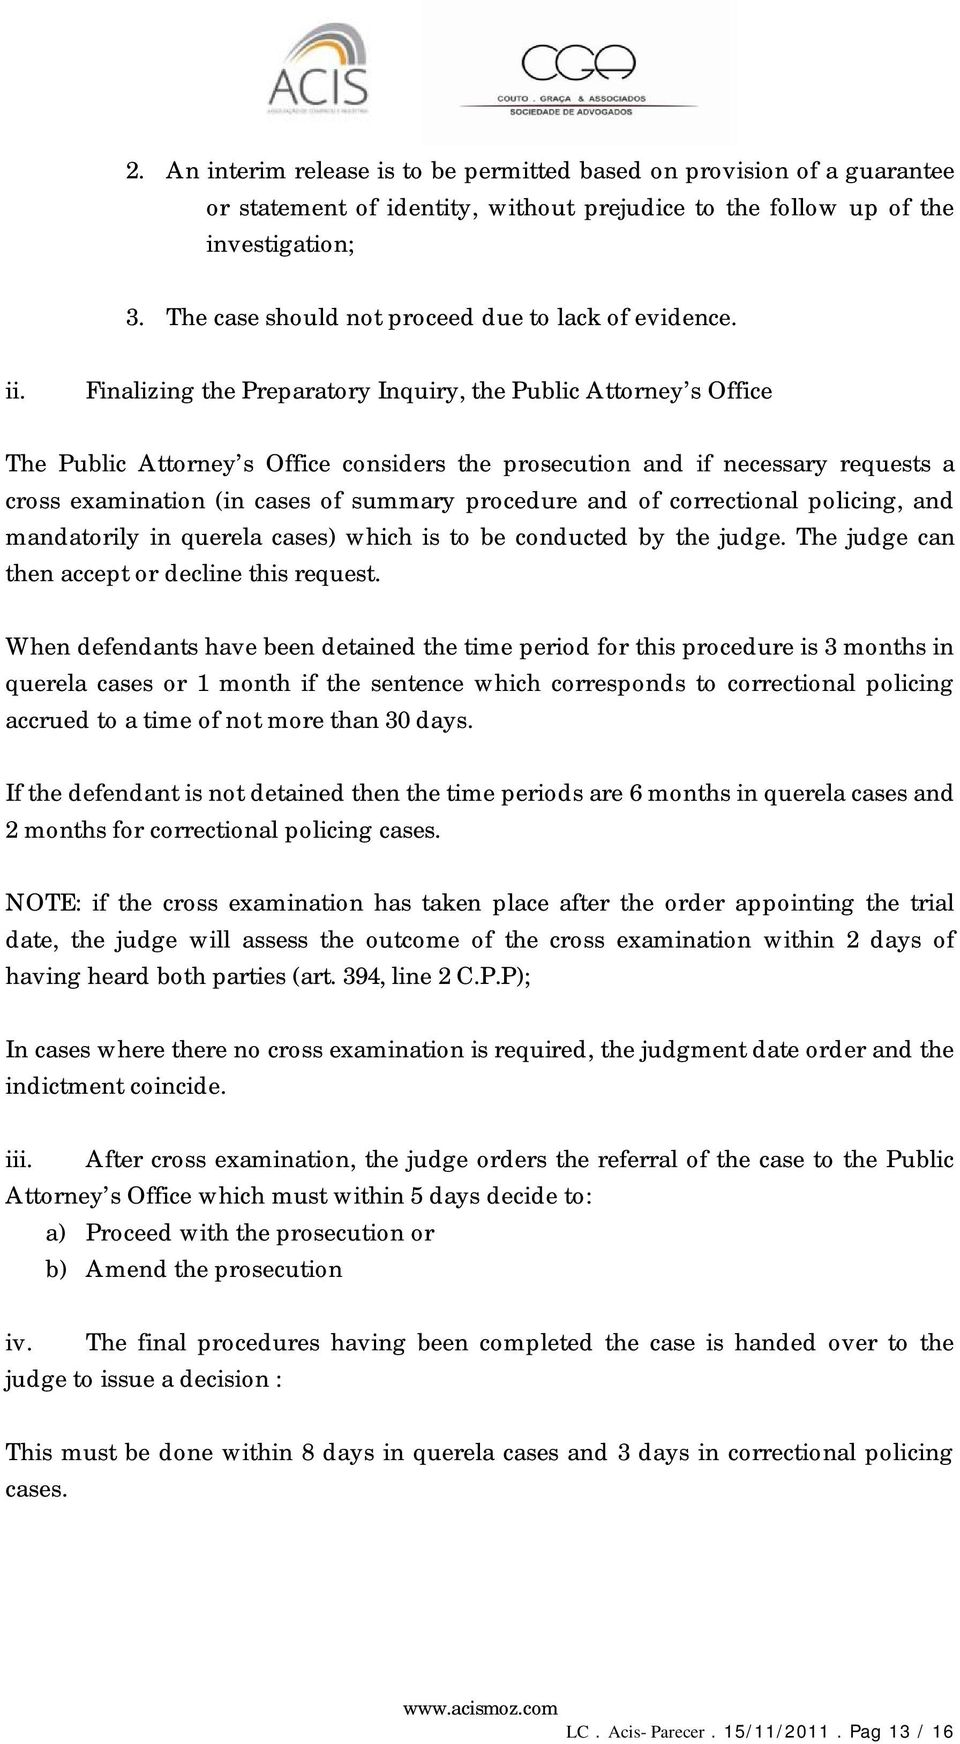 Finalizing the Preparatory Inquiry, the Public Attorney s Office The Public Attorney s Office considers the prosecution and if necessary requests a cross examination (in cases of summary procedure